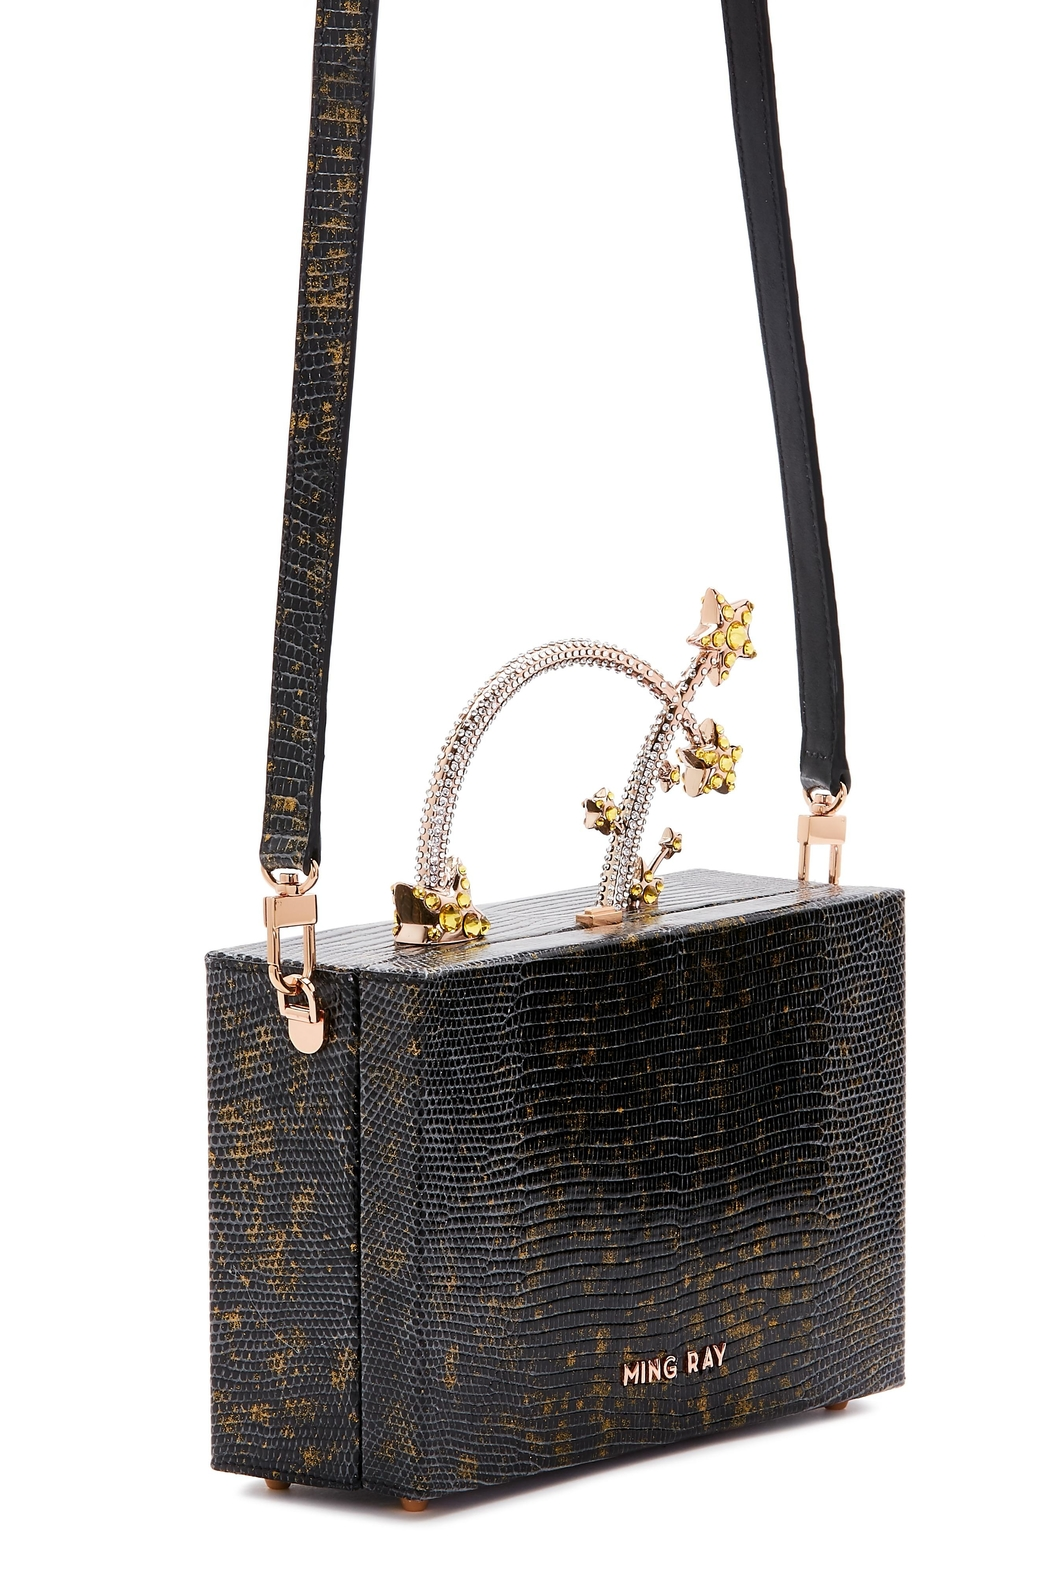 Ming Ray Black Lizard Clutch - Back Cropped Image